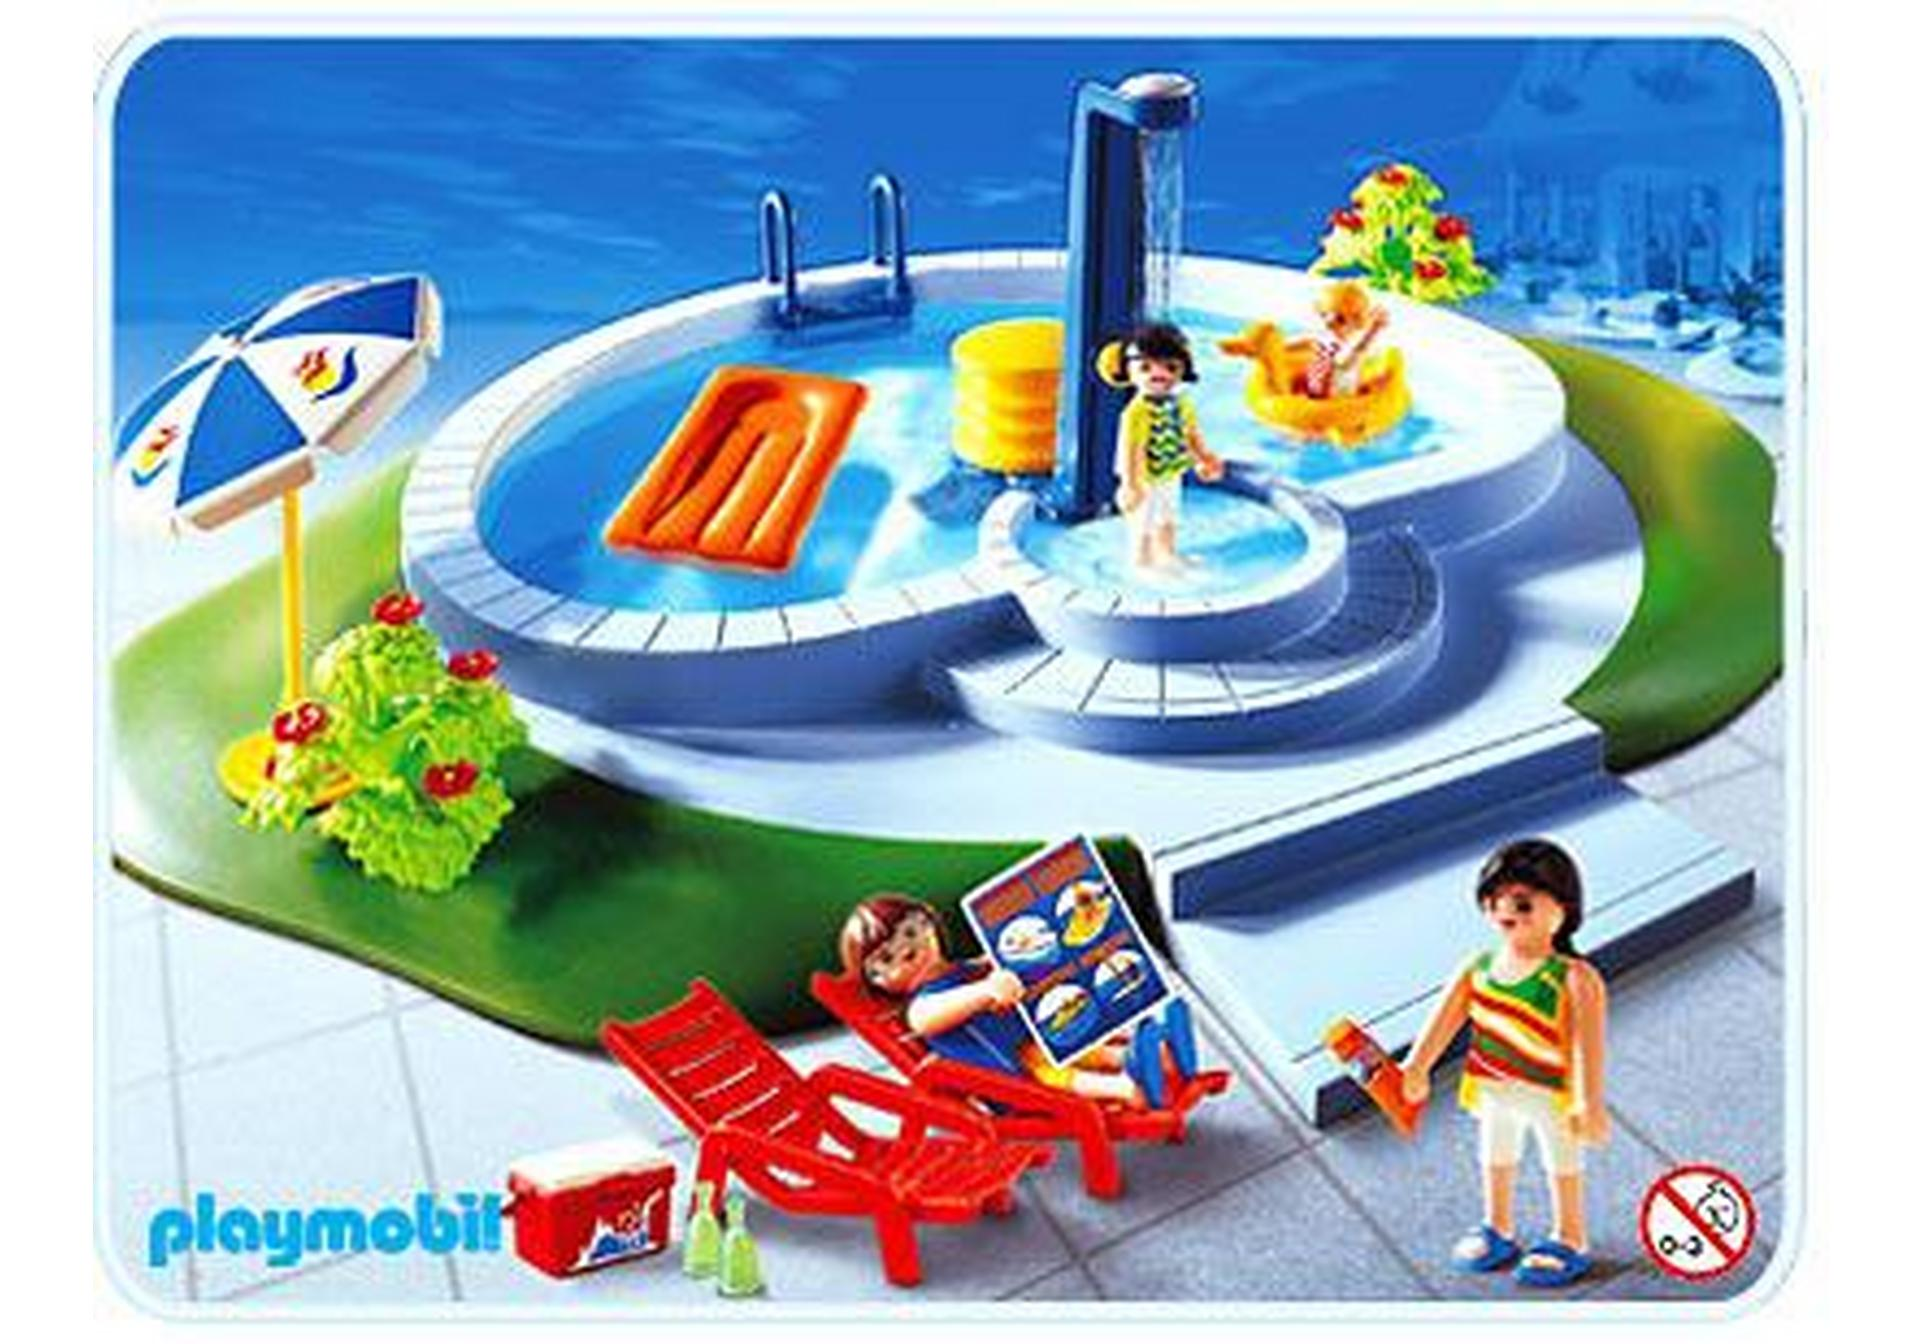 Swimmingpool 3205 b playmobil for Piscine playmobil